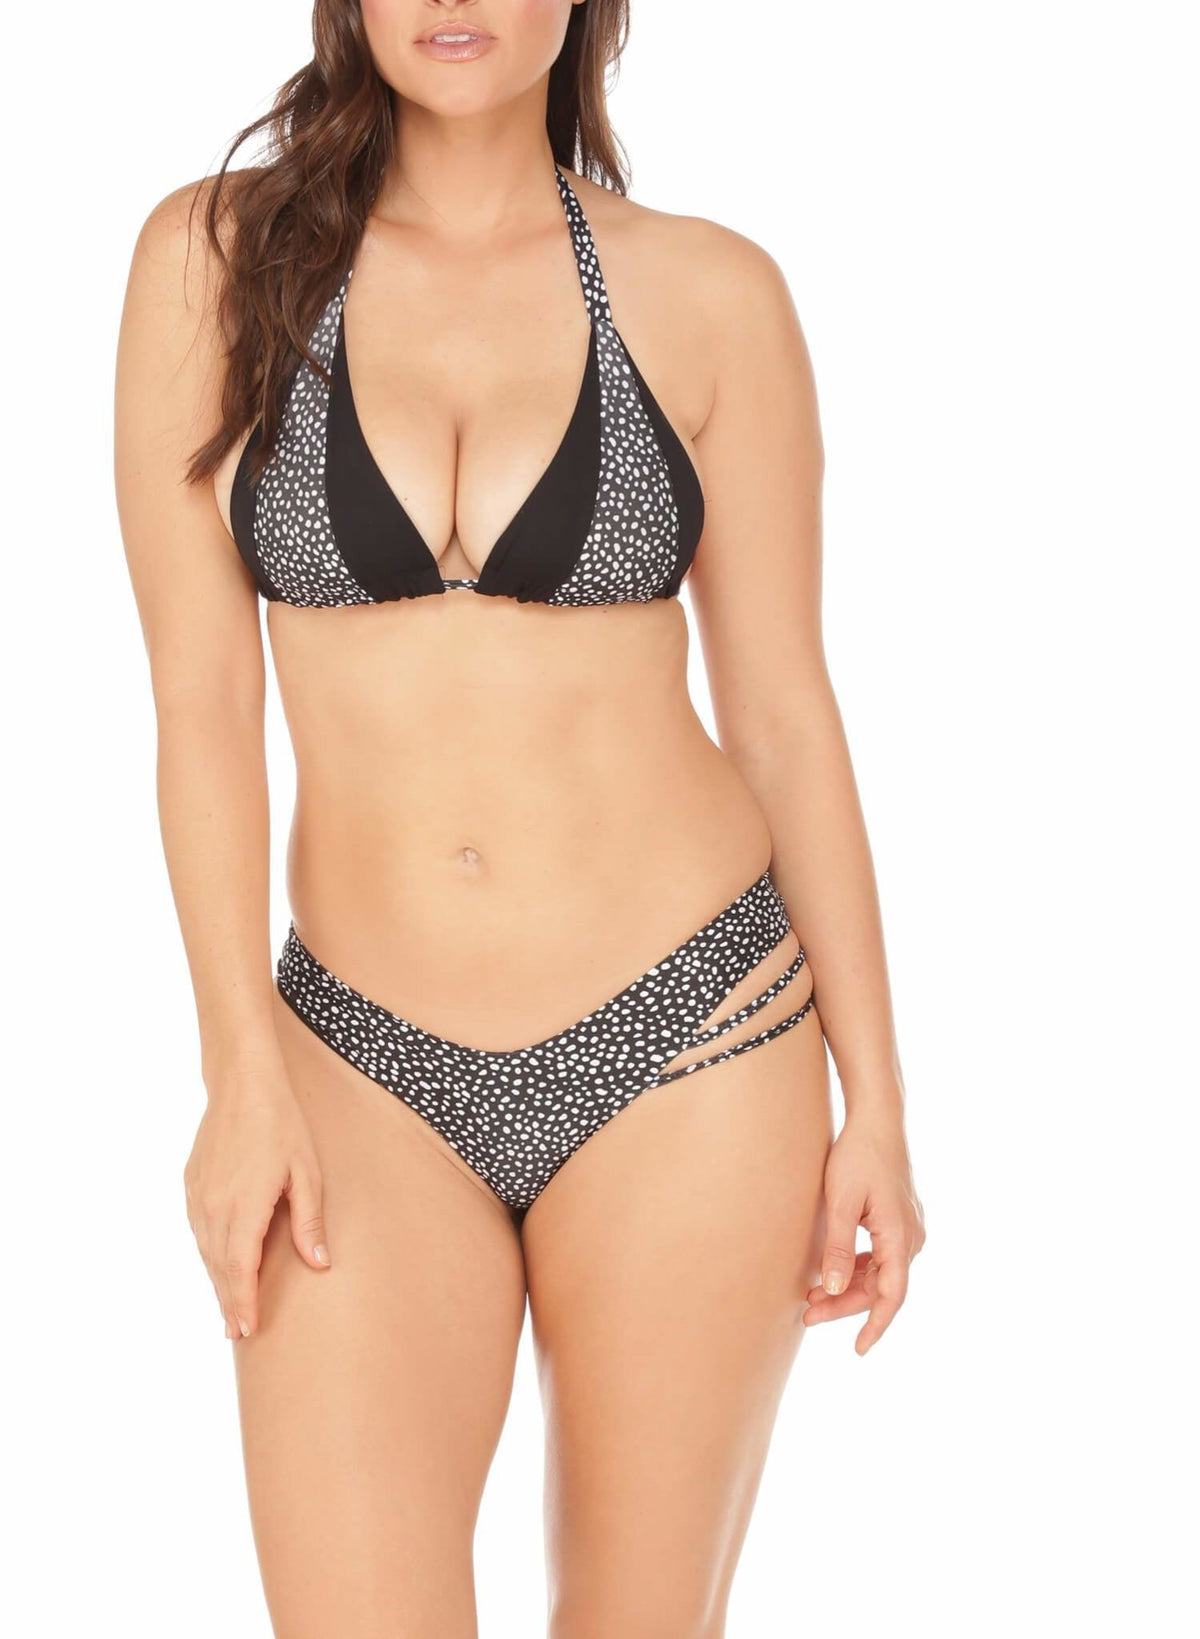 Trixy Triangle Top - Polka Dots